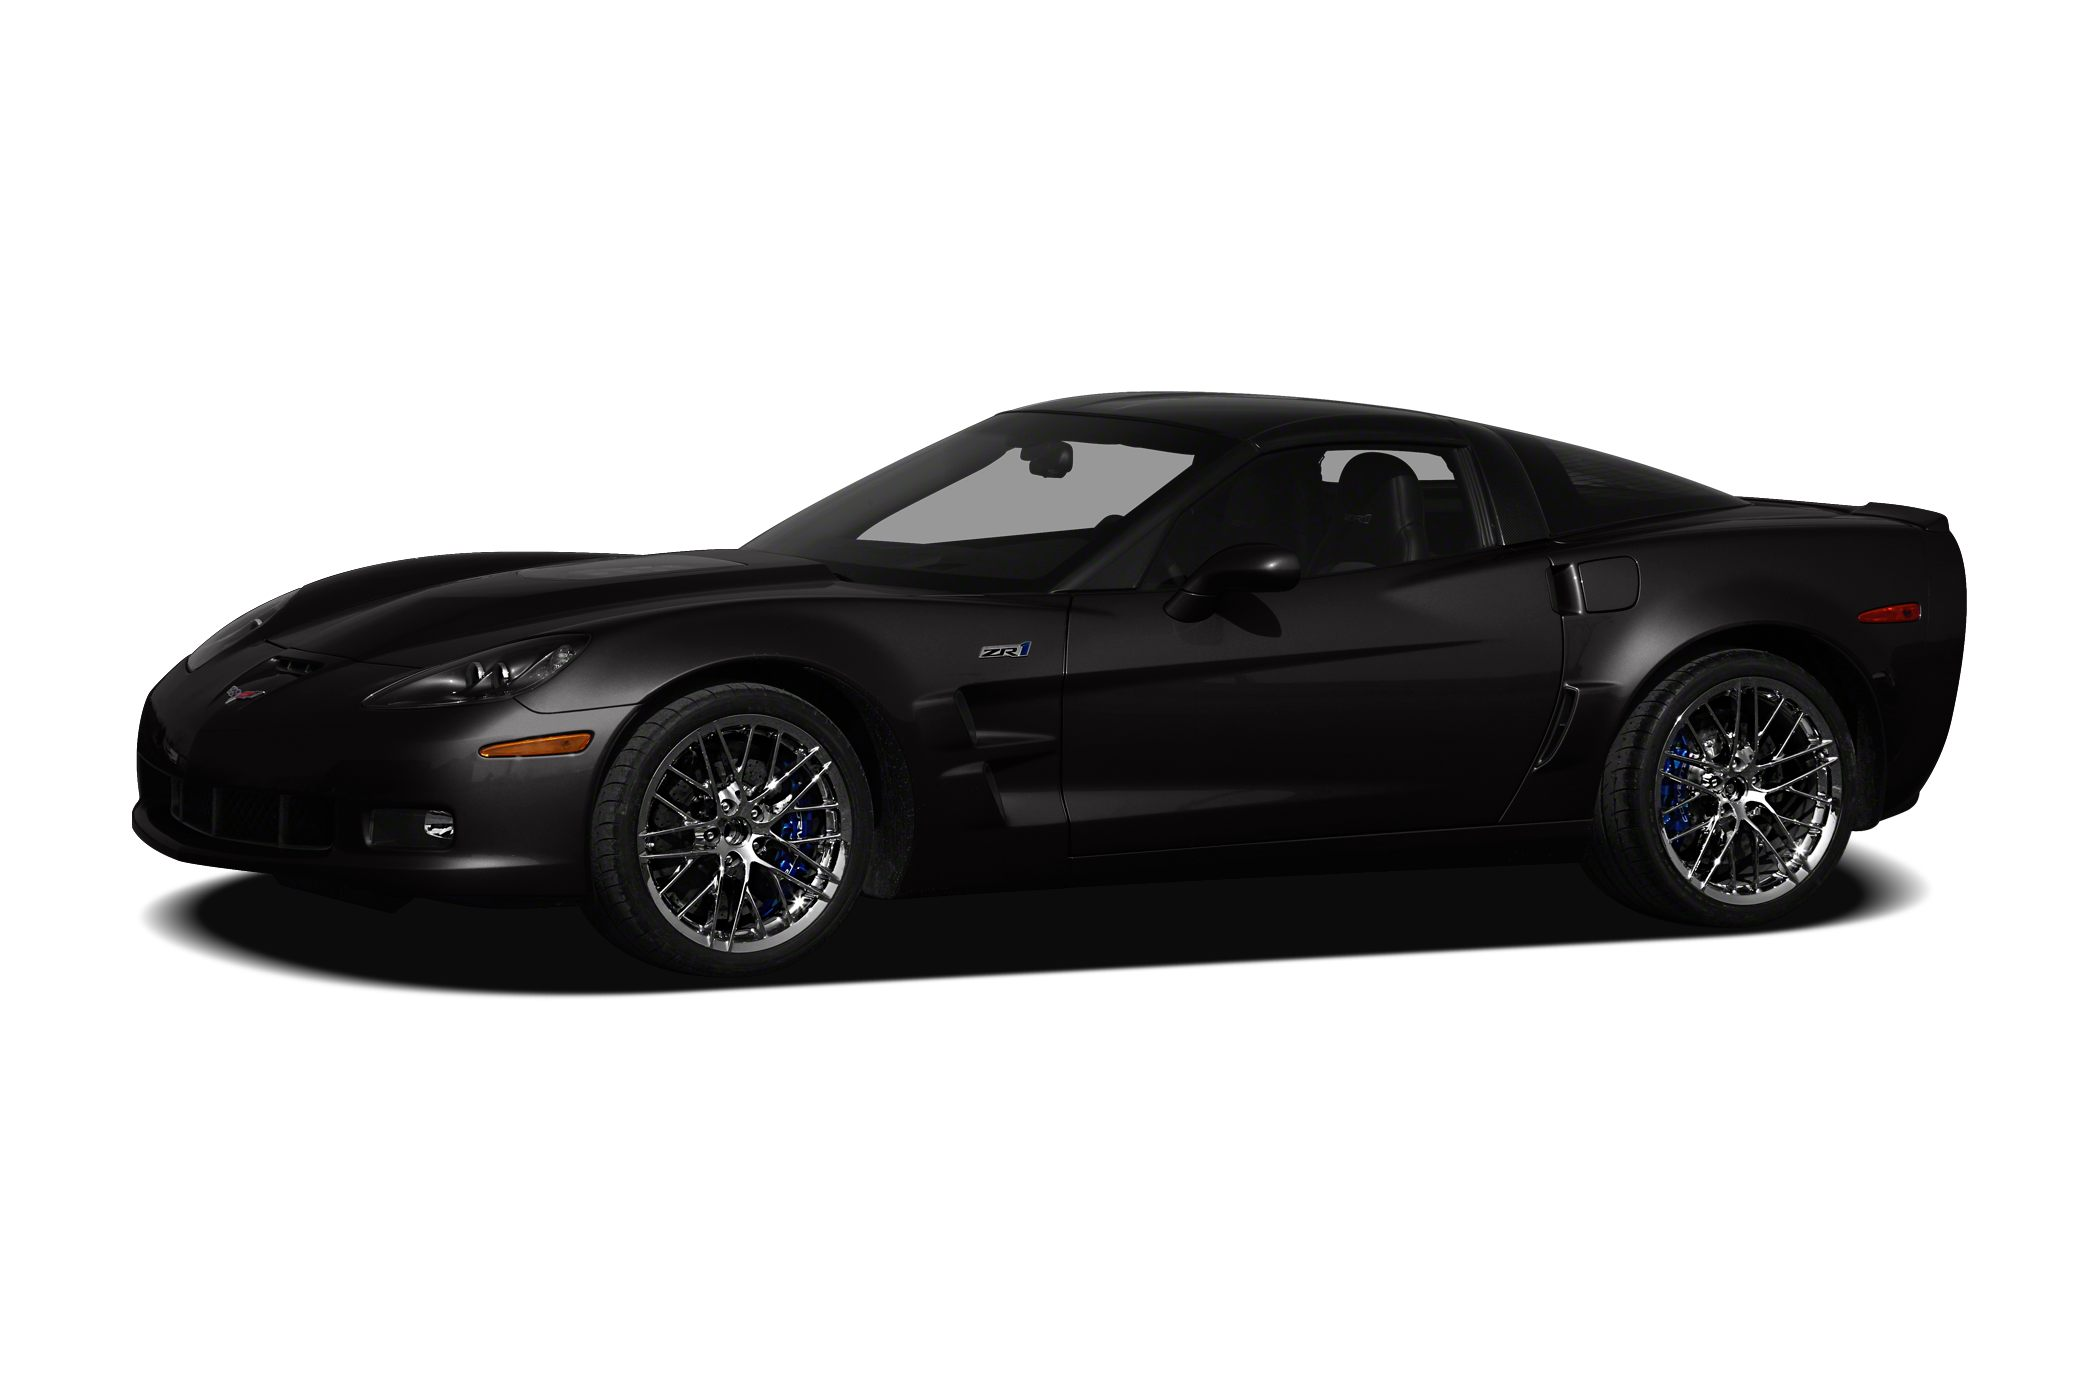 2012 Chevrolet Corvette ZR1 2dr Coupe Pricing and Options